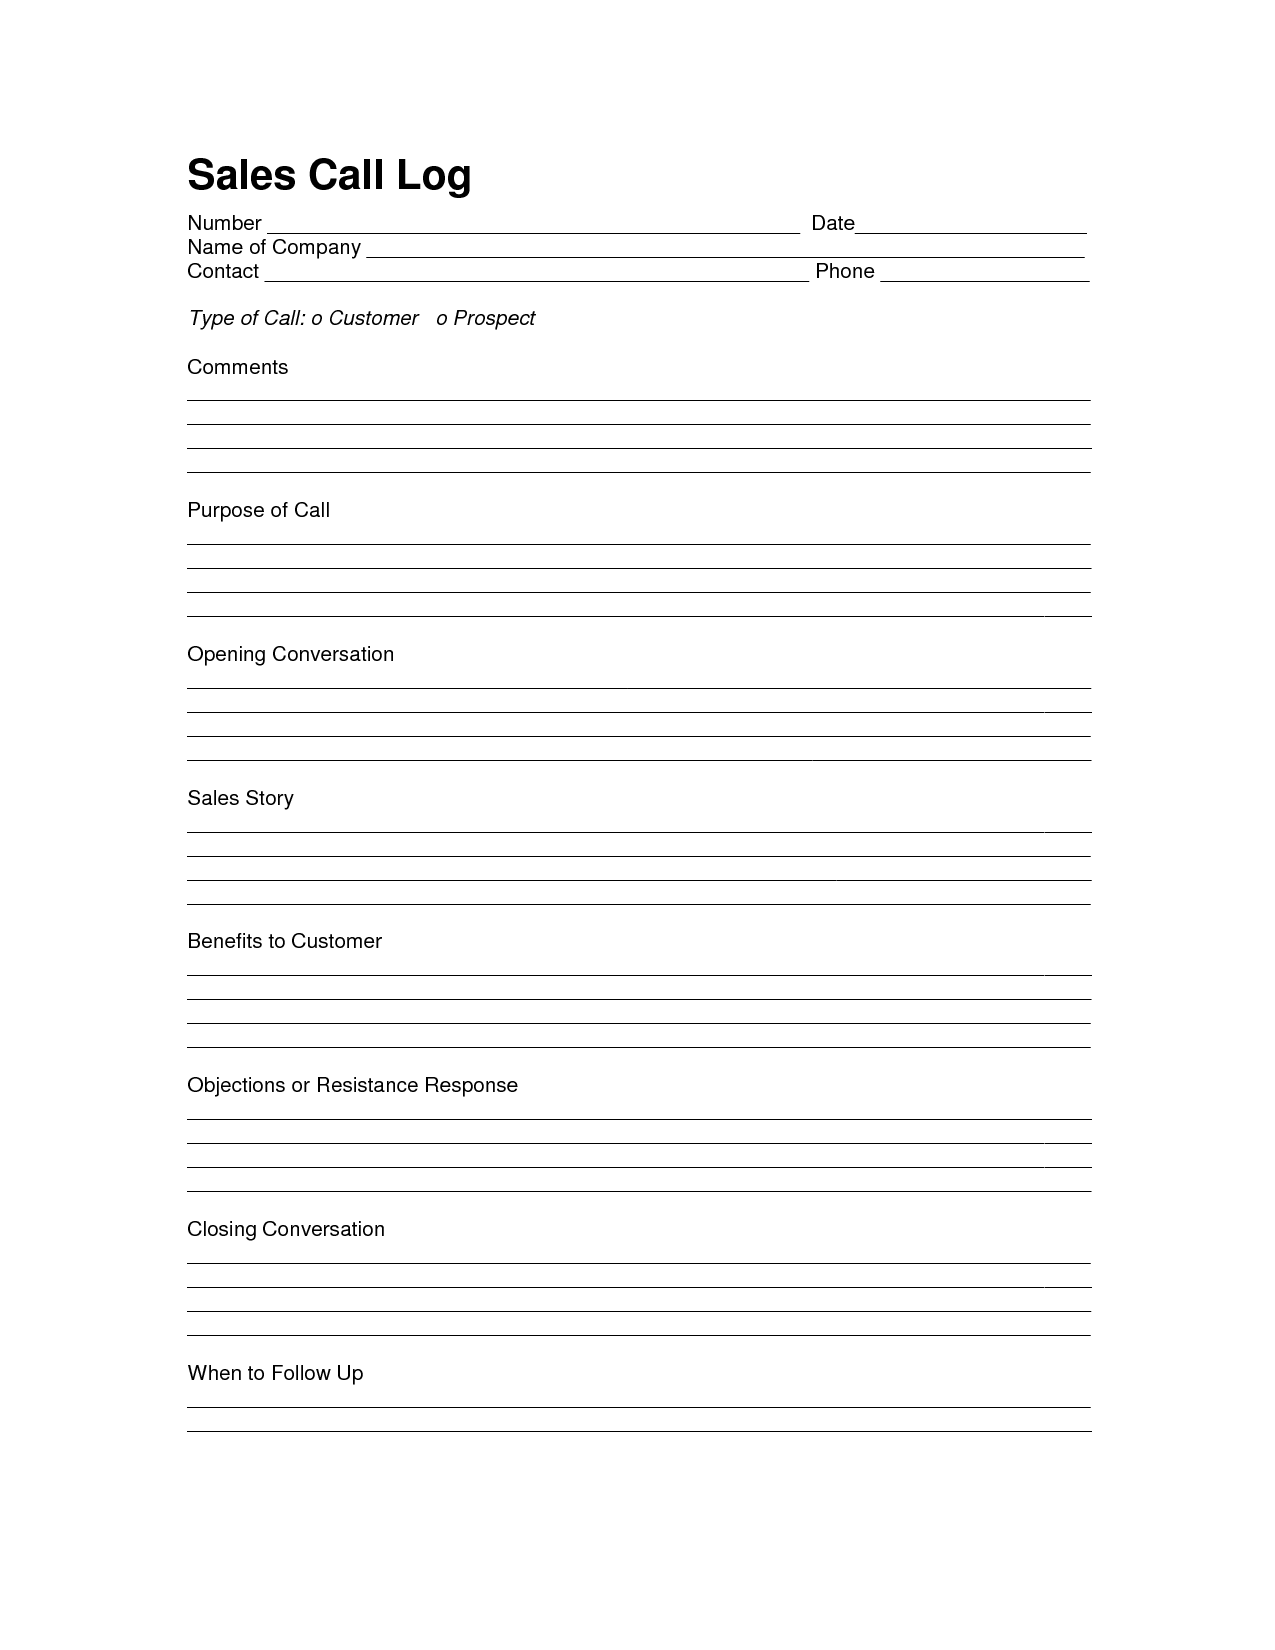 Captivating Sales Log Sheet Template | Sales Call Log Template